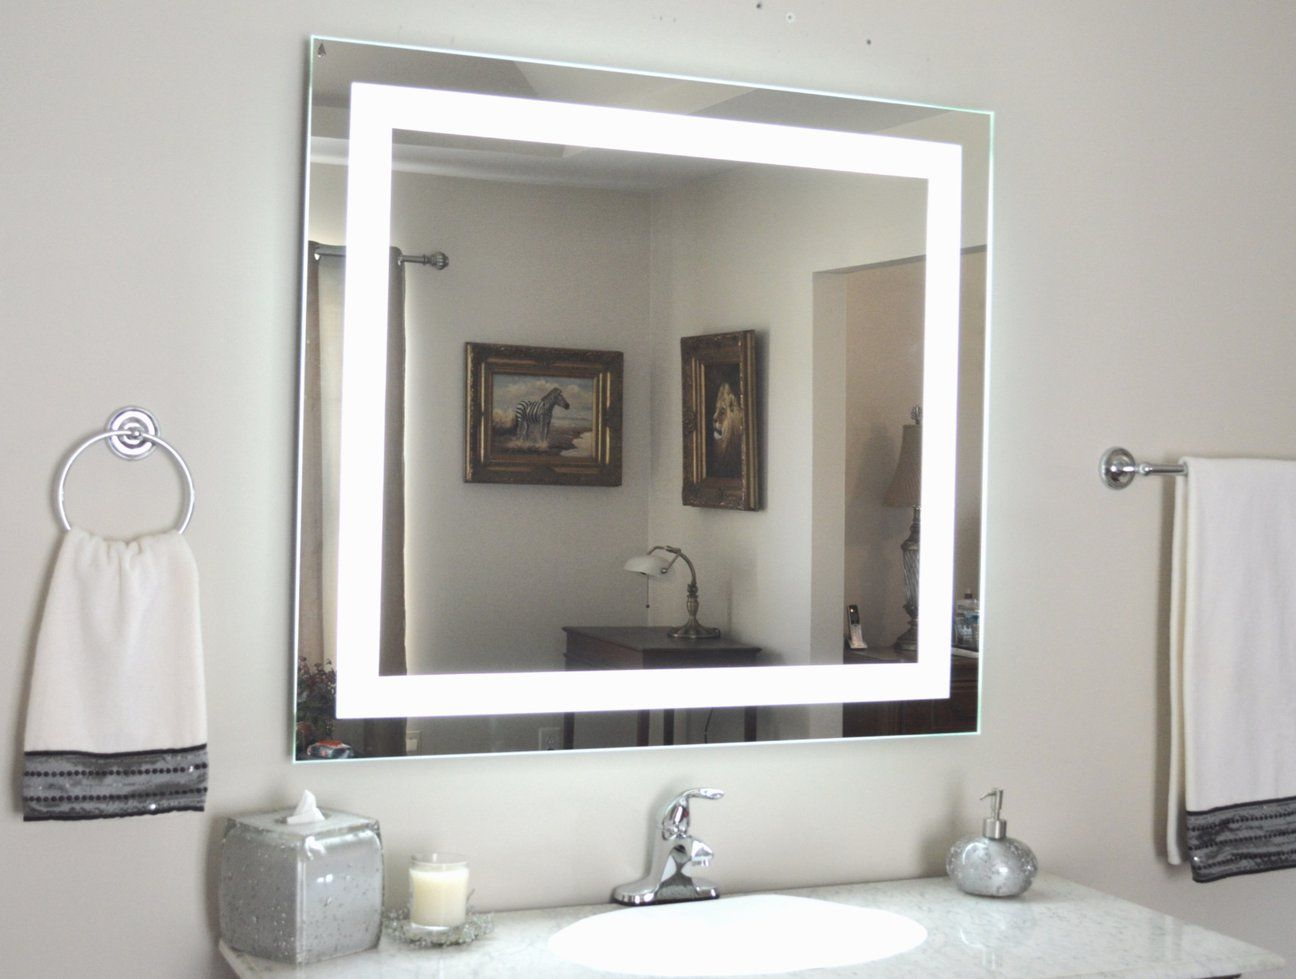 Front Lighted Led Bathroom Vanity Mirror 44 Lighted Wall Mirror Vanity Wall Mirror Mirror Wall Bathroom